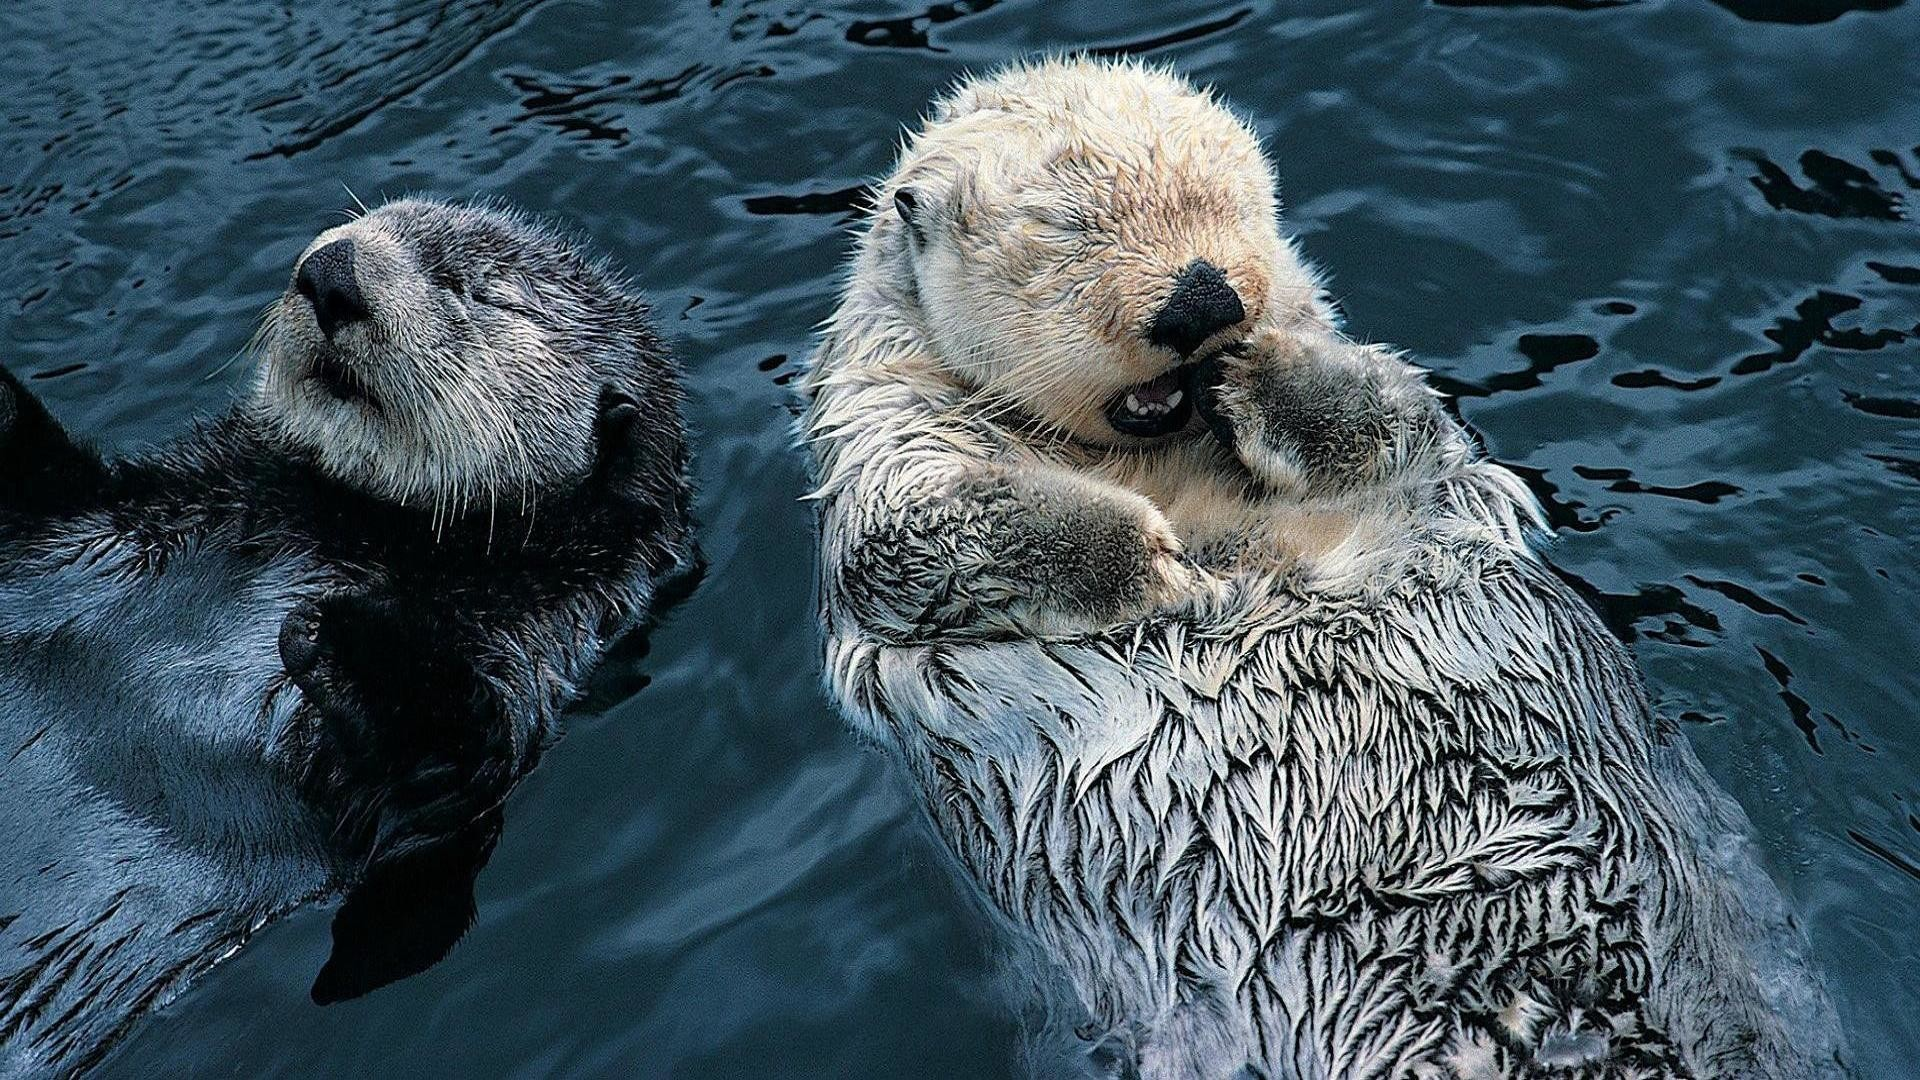 Res: 1920x1080, Cute Sea Otter Wallpaper - Viewing Gallery